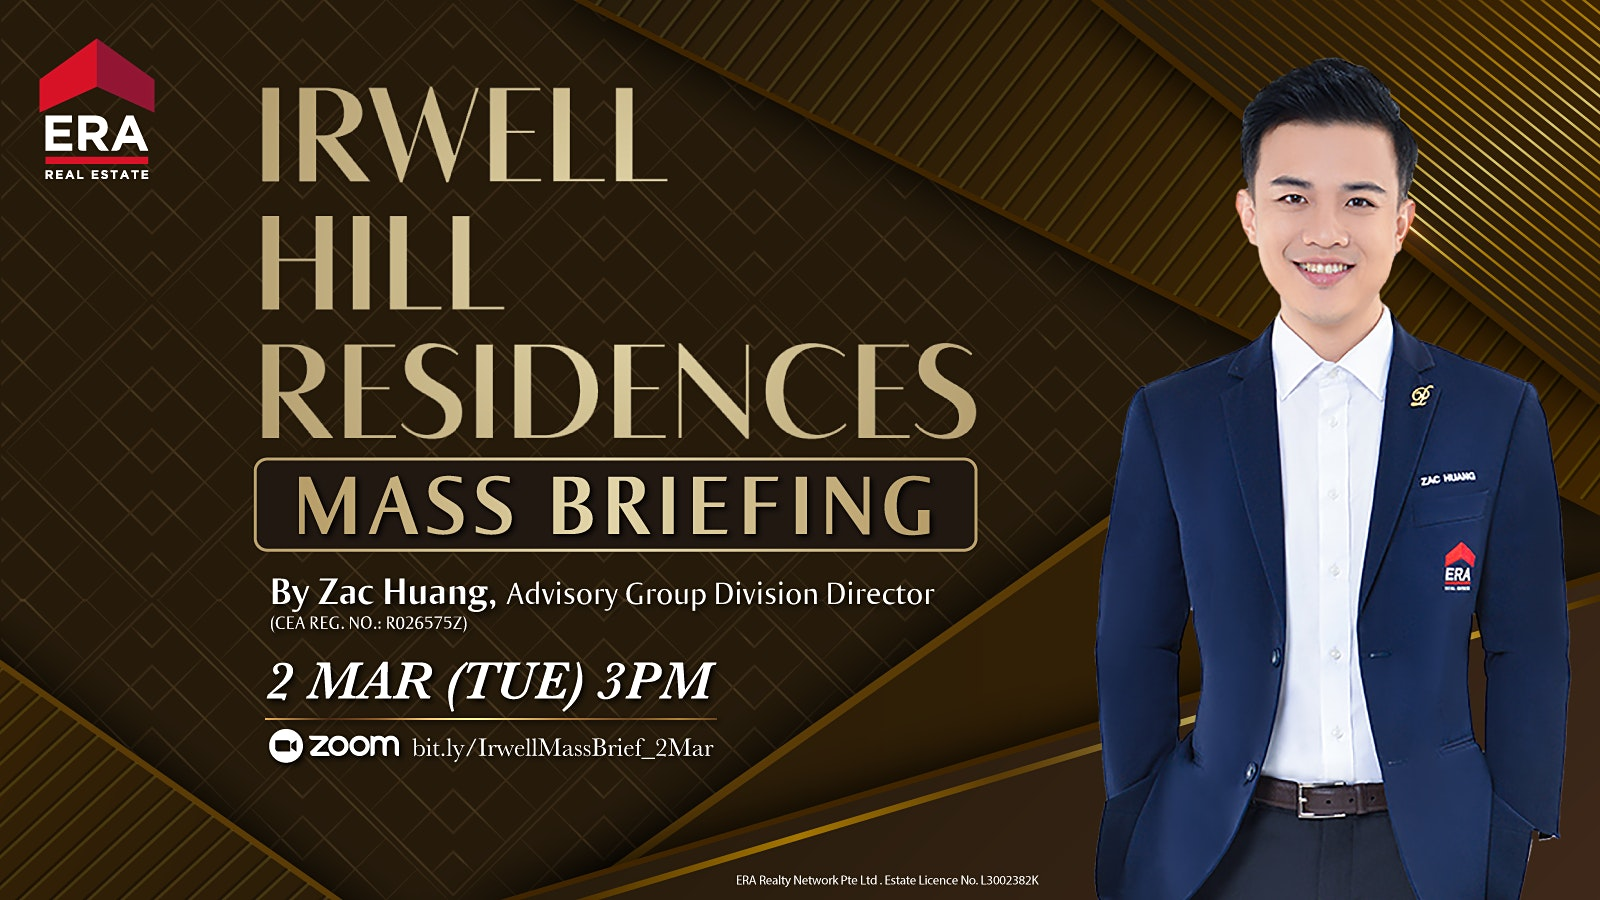 Irwell Hill Residences Mass Briefing